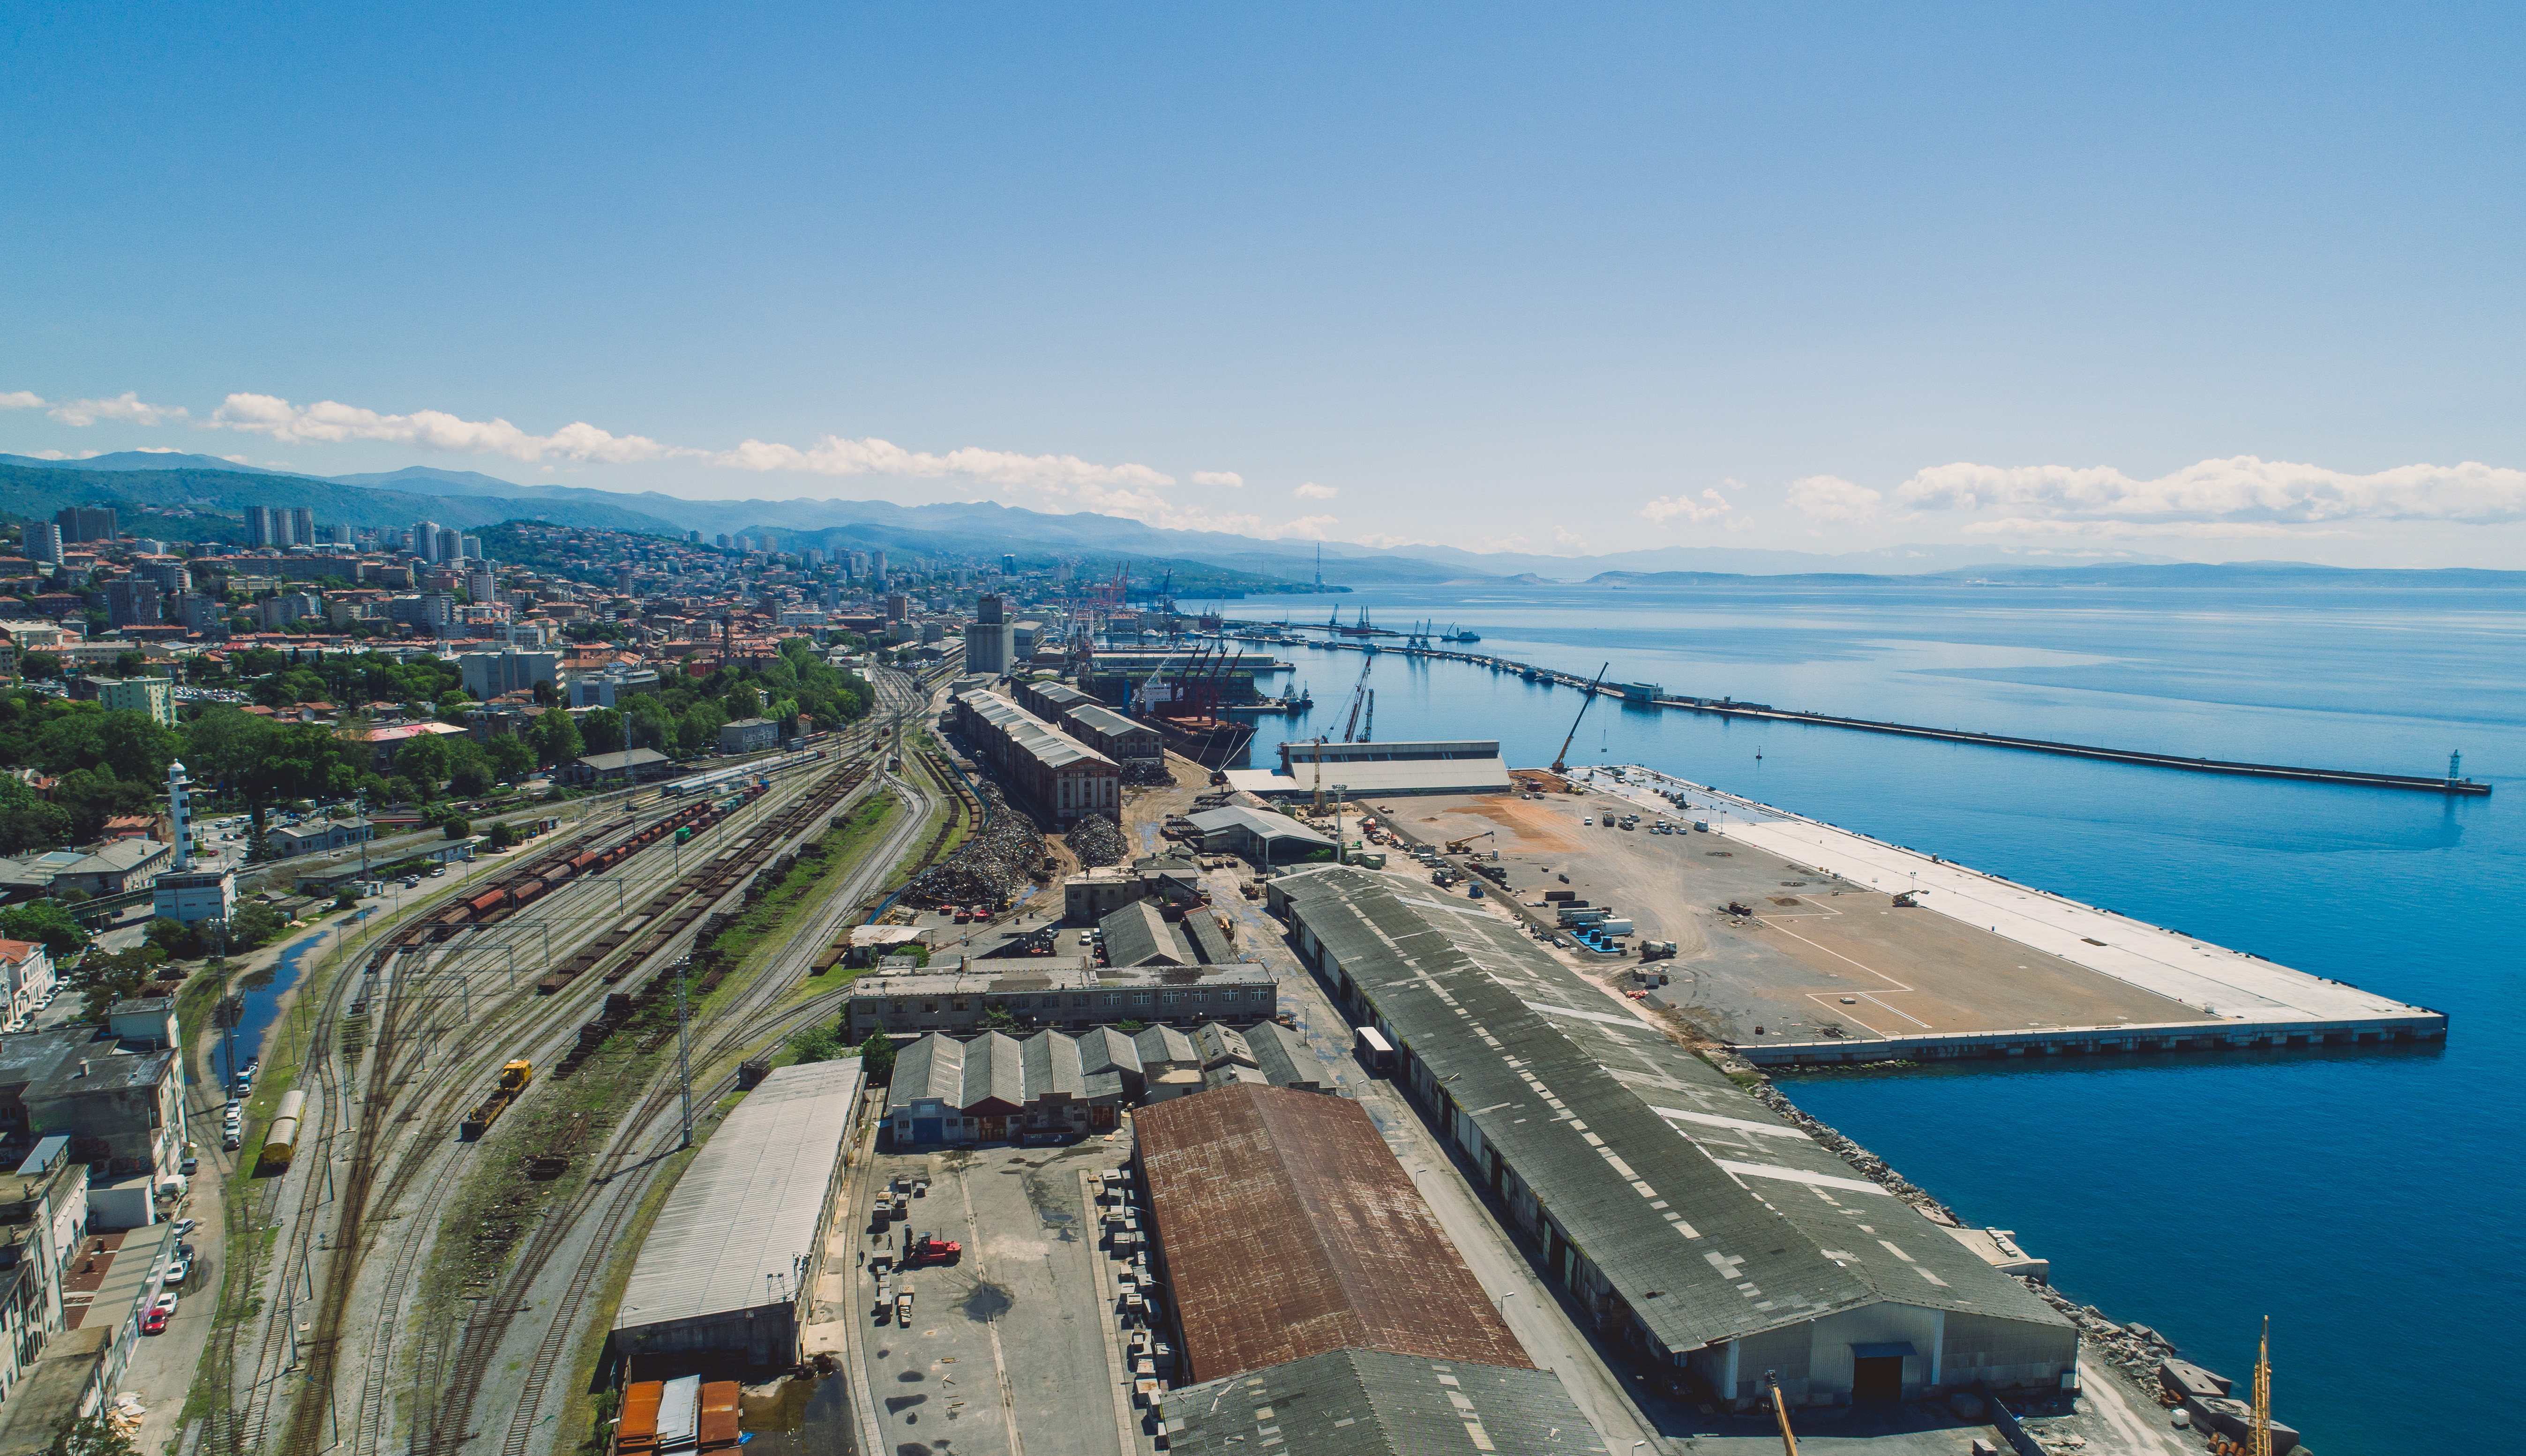 Completion of construction works on the Zagreb Deep Sea Container Terminal - Year 2019